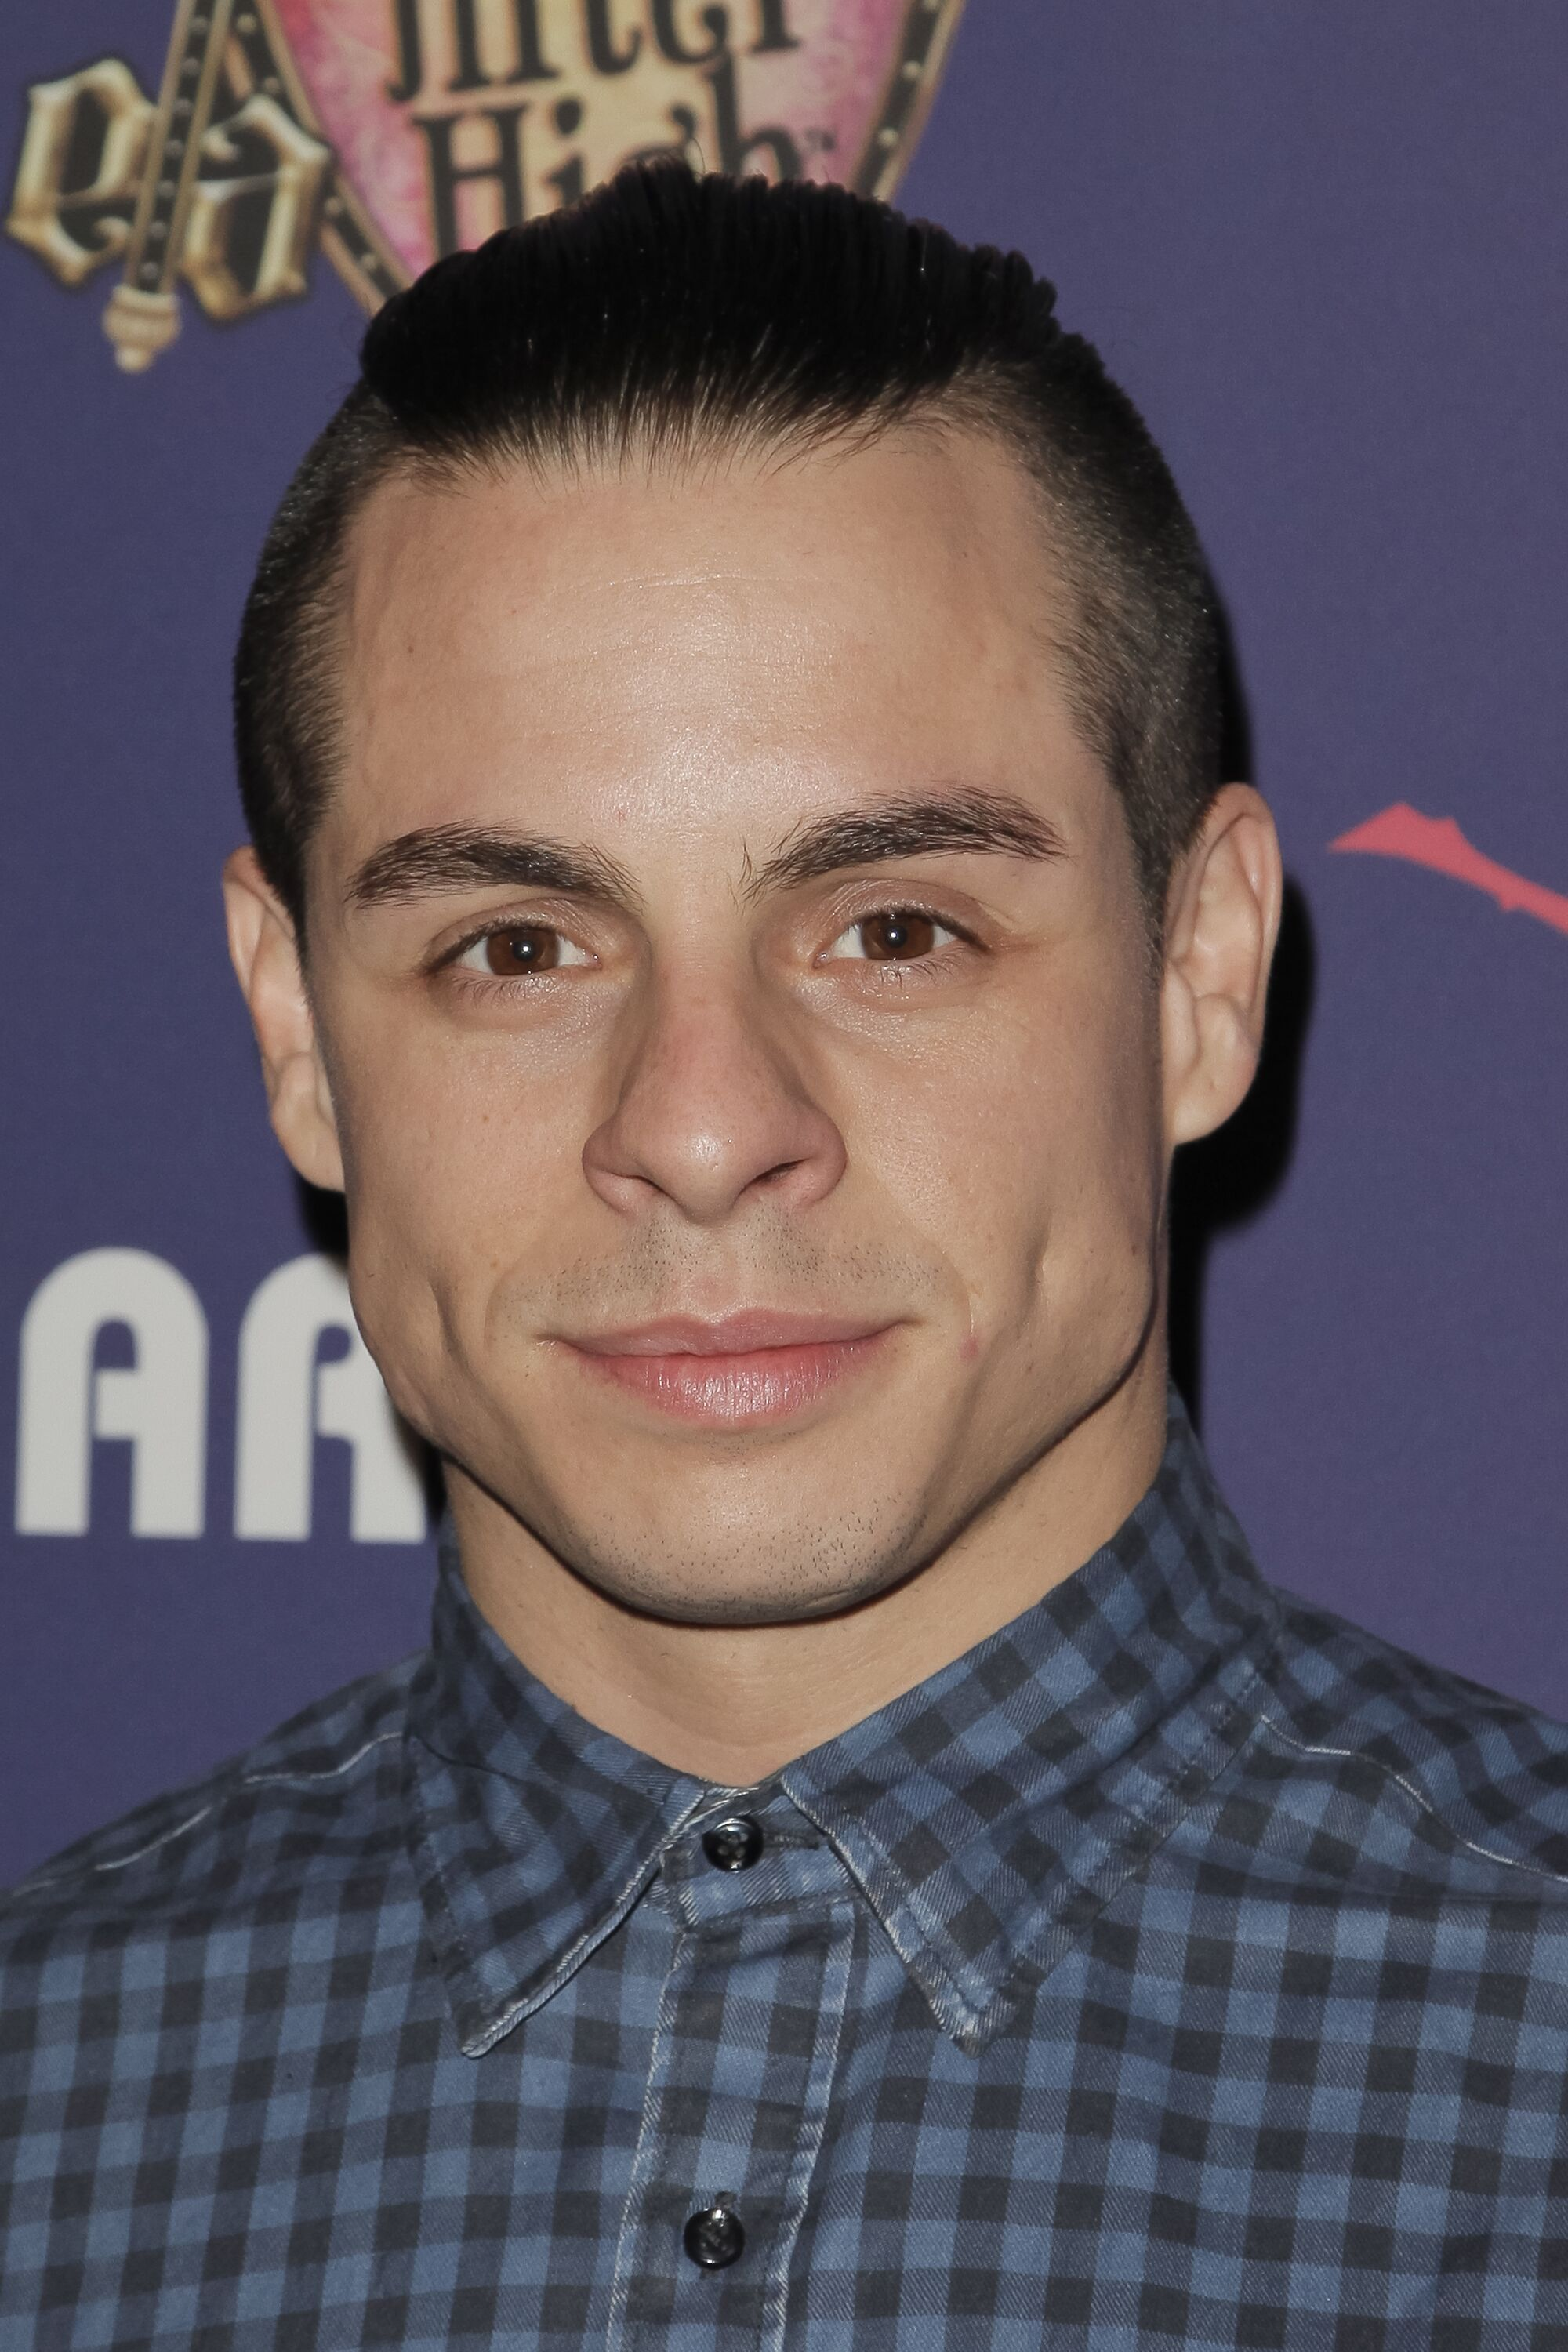 Dancer and choreographer Casper Smart at the at Dreamworks Animation's 'Home' Premiere in 2015 | Source: Getty Images